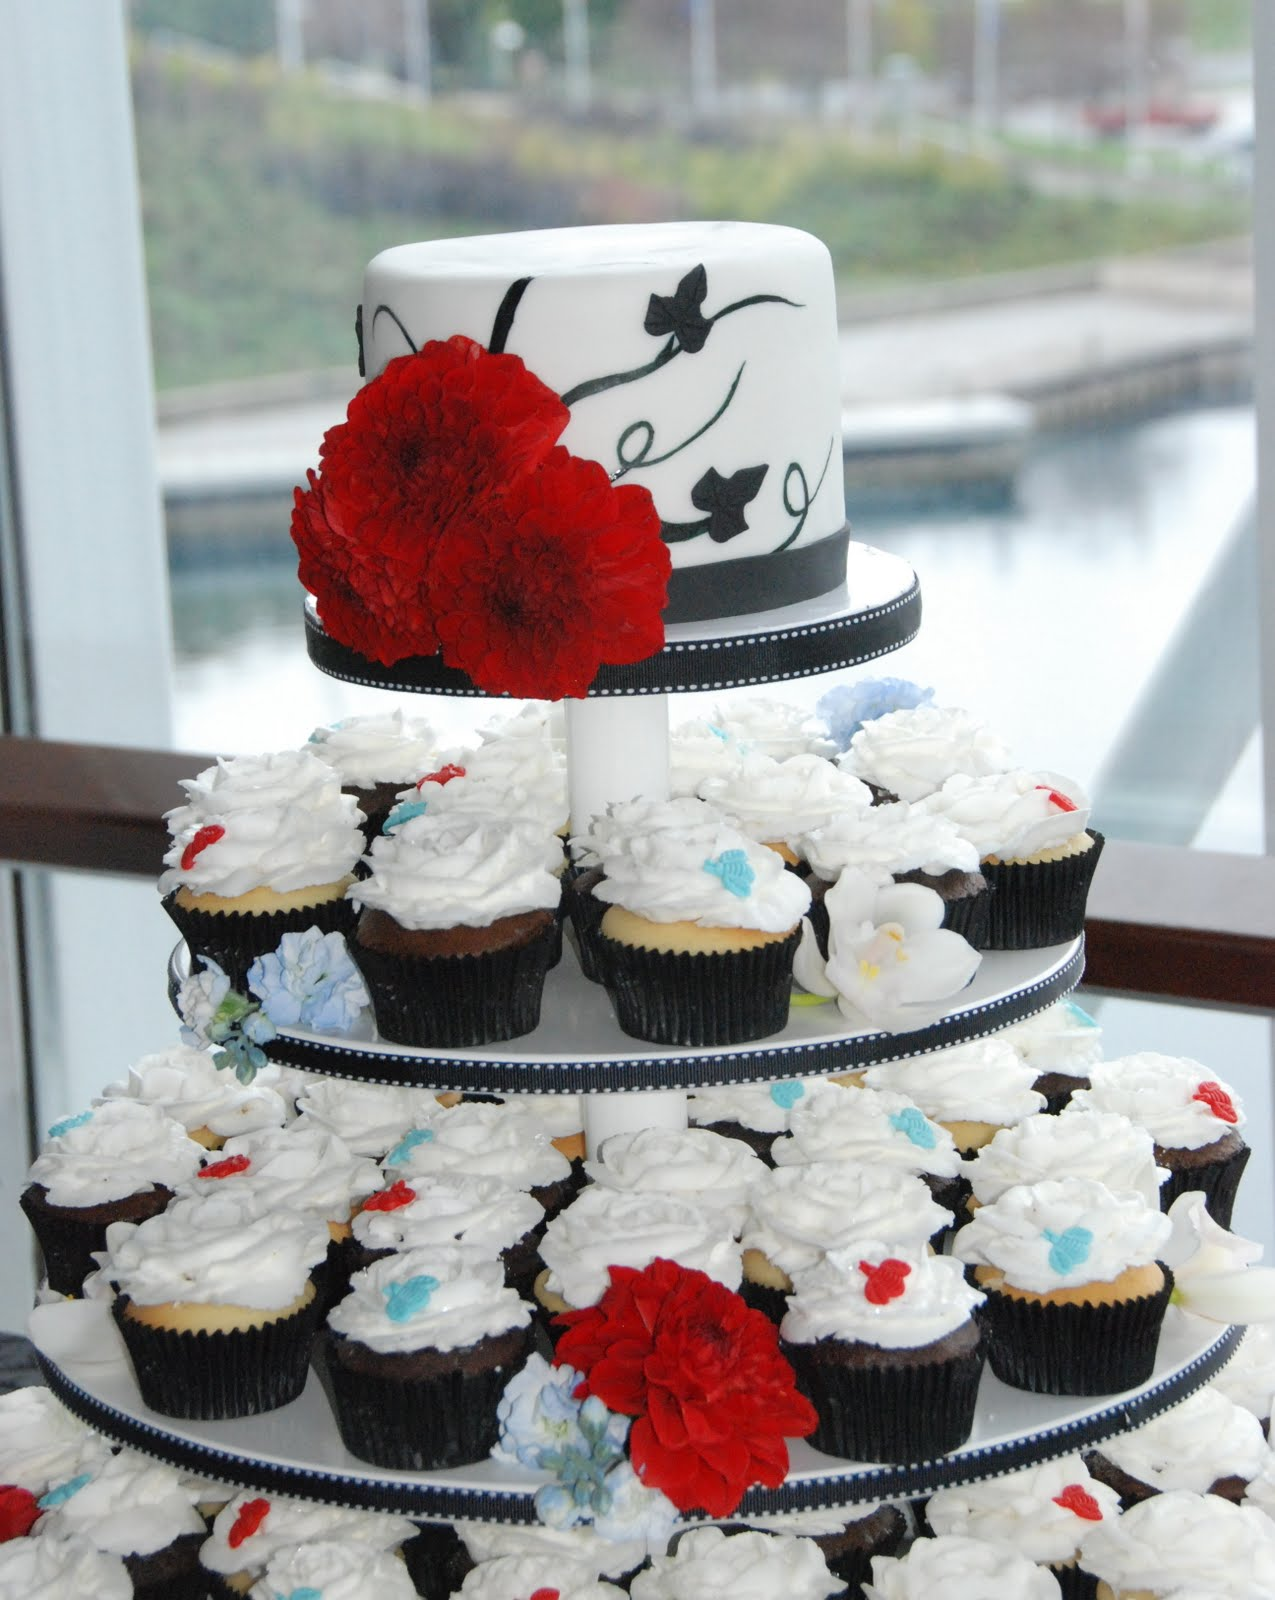 red and white wedding cake cupcakes cake creations by trish cupcake wedding 19097